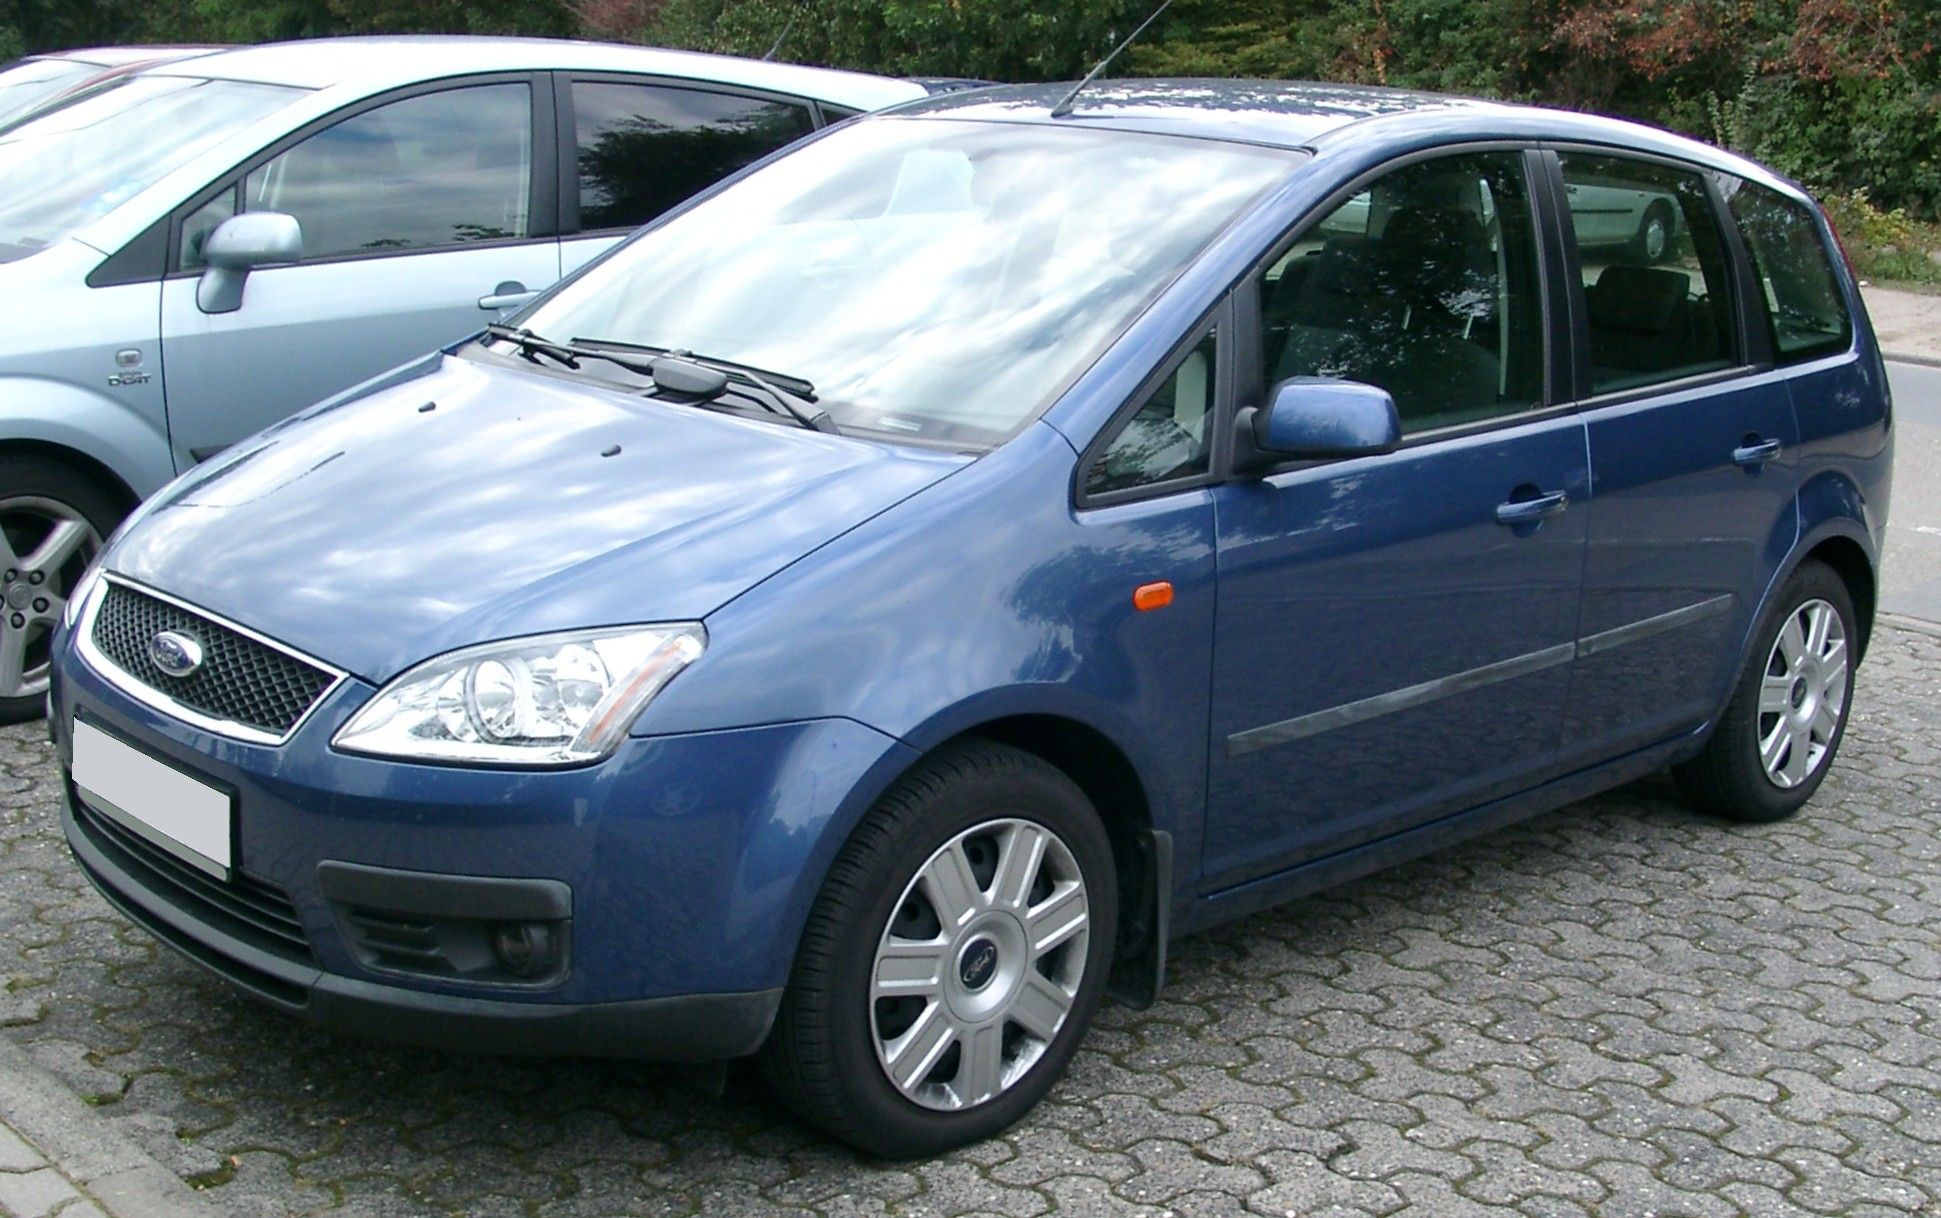 2007 Ford C Max Ford C Max Wikipedia The Free Encyclopedia 2007